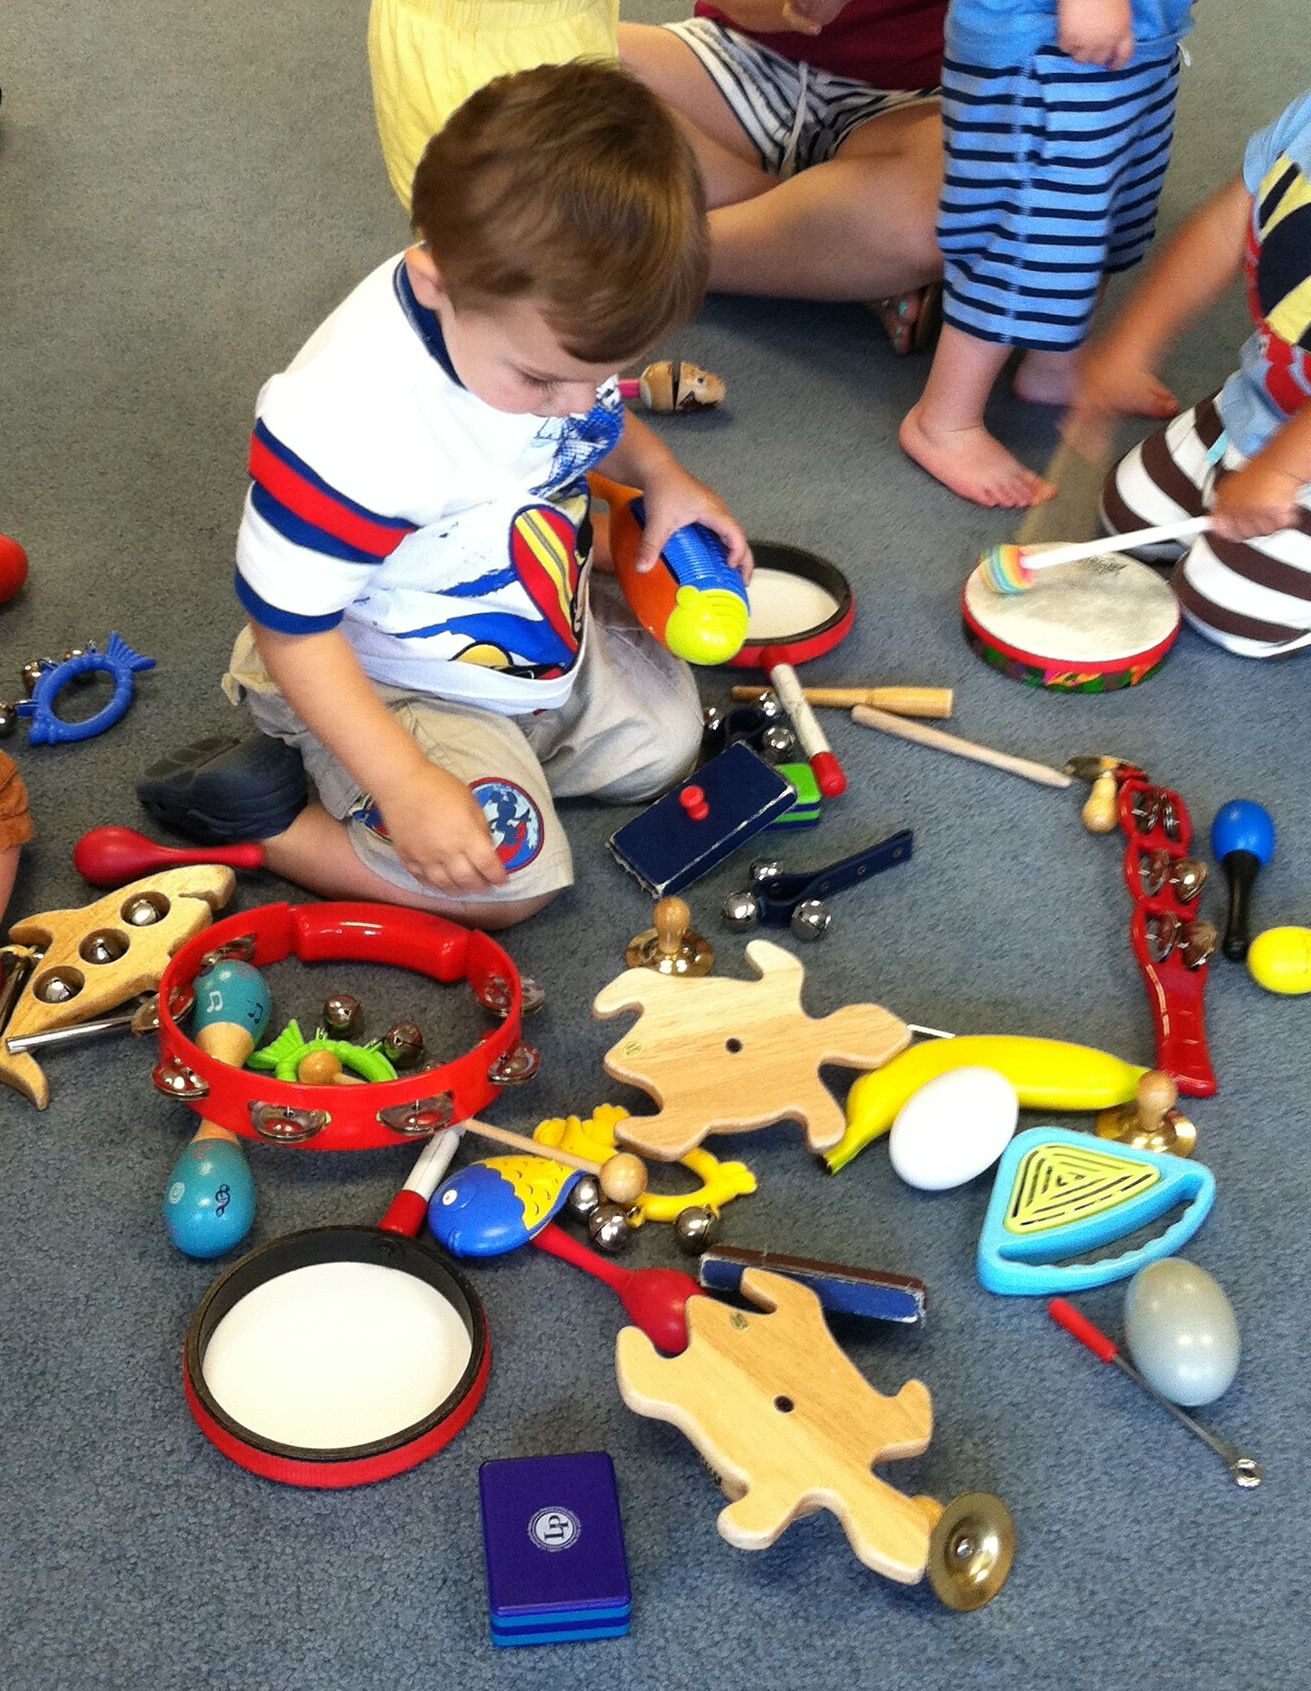 Roc LOVED the jam session as part of each Music for Aardvarks class.